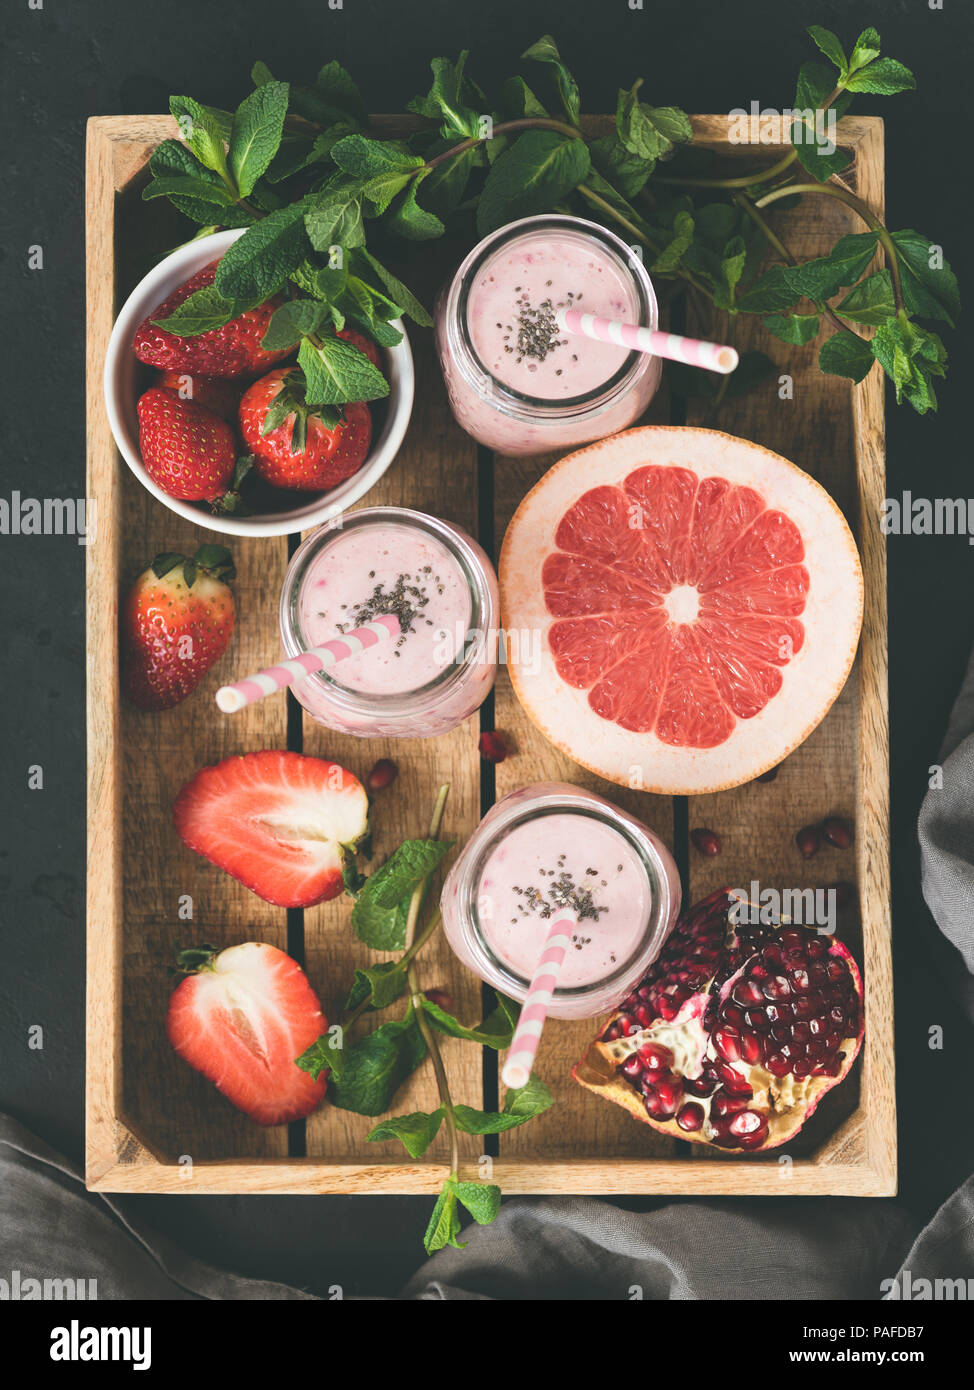 Fruit and berry smoothies on wooden tray, top view, toned image. Concept of healthy lifestyle and healthy eating - Stock Image